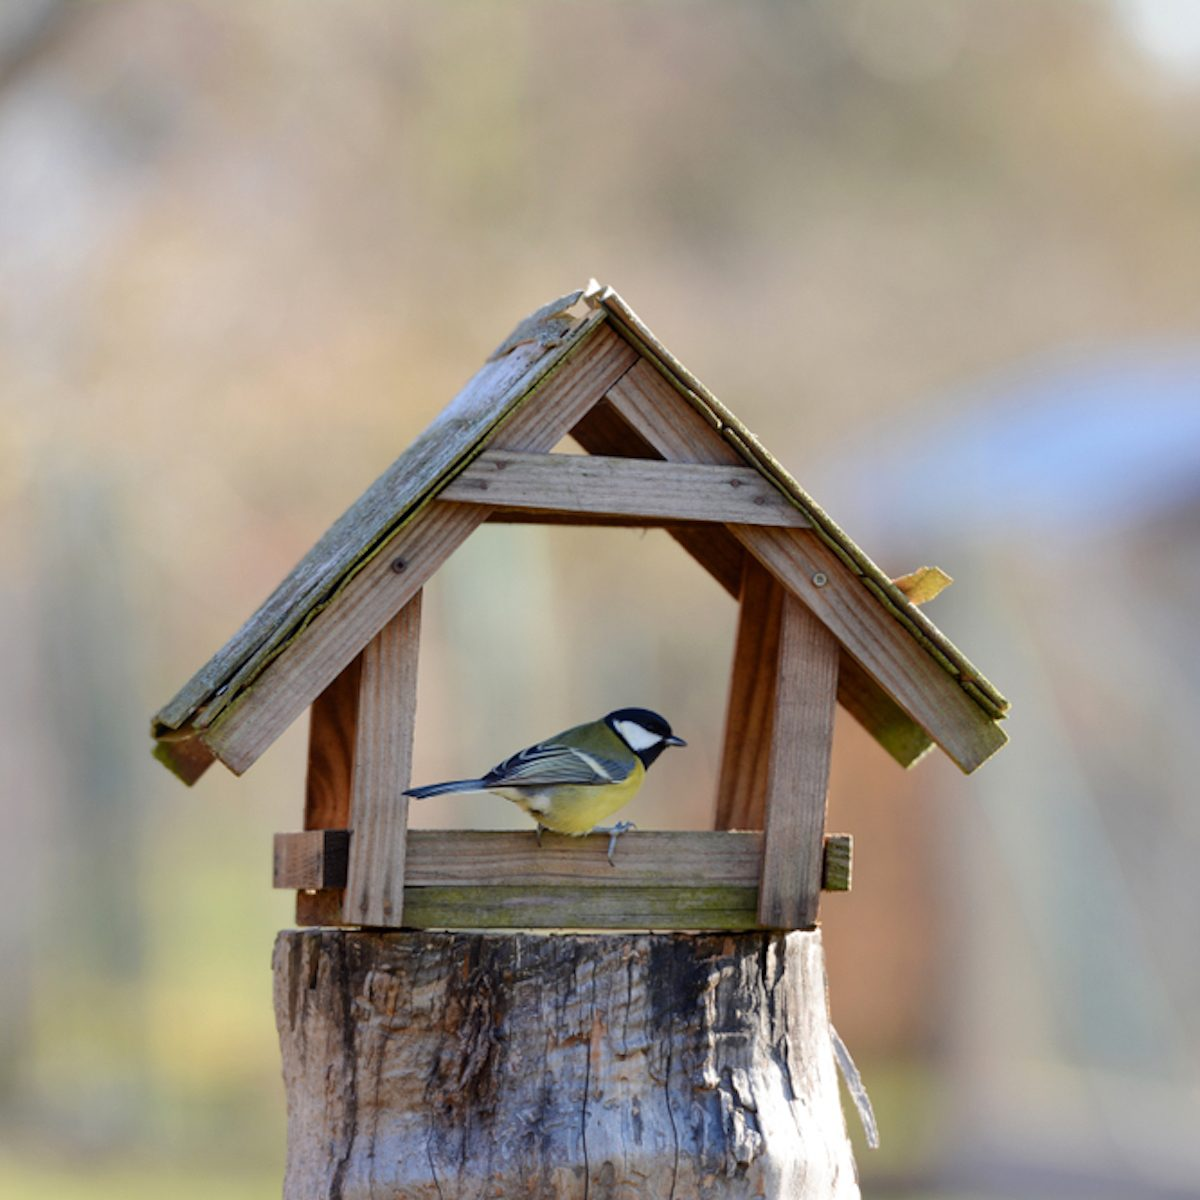 The Great Tit sitting on the bird feeder in the garden.